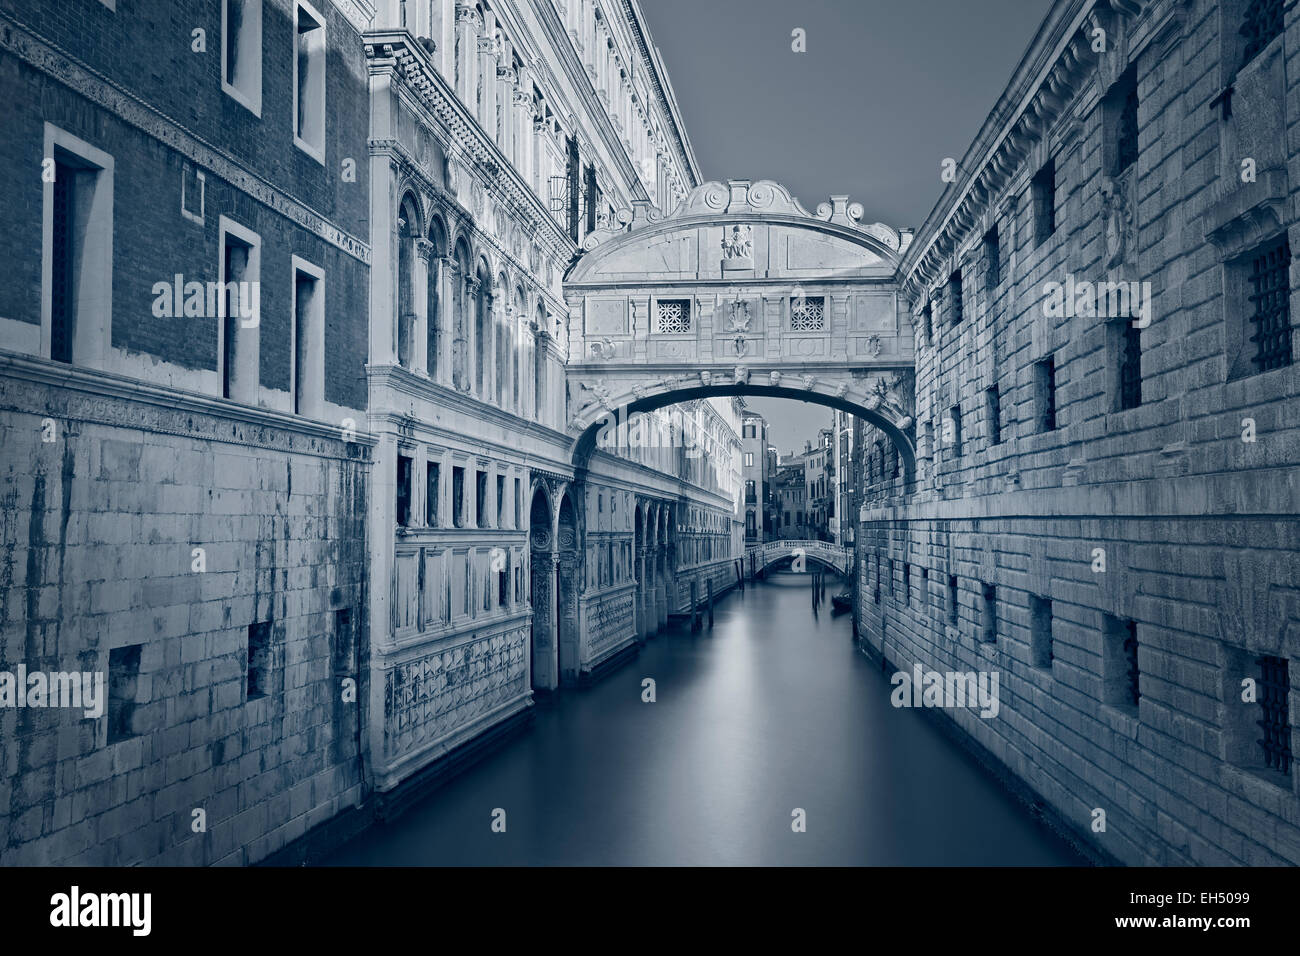 Bridge of Sighs. Toned image of the famous Bridge of Sighs in Venice, Italy. - Stock Image